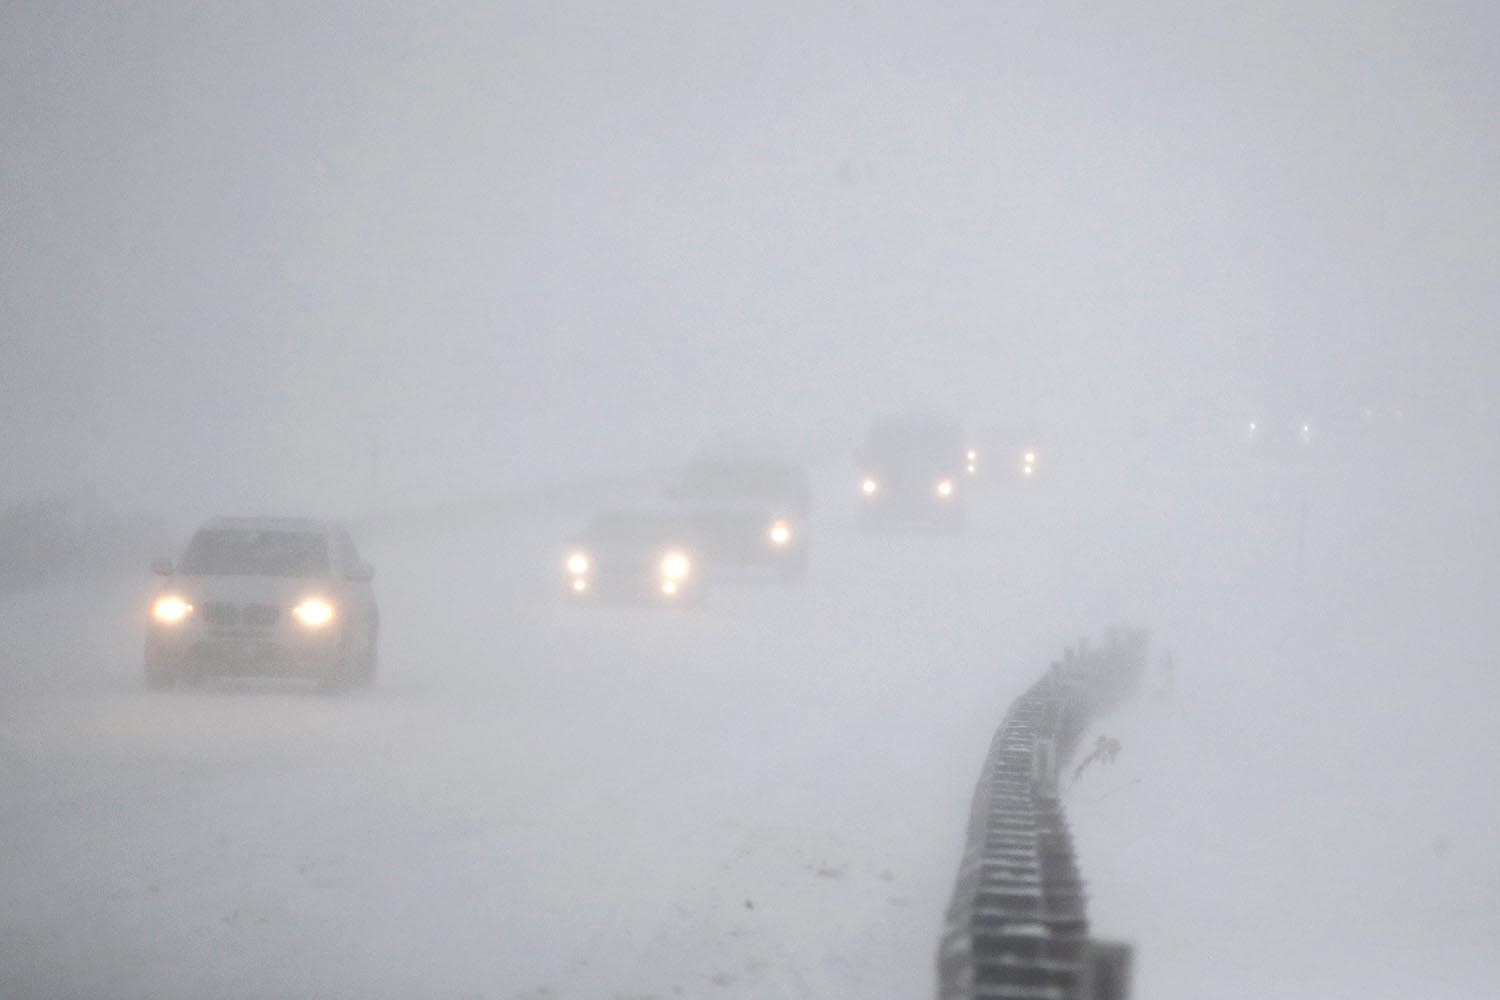 <div class='meta'><div class='origin-logo' data-origin='AP'></div><span class='caption-text' data-credit='AP Photo/Julio Cortez'>Vehicles commute southbound on the Garden State Parkway in whiteout conditions during a snowstorm, Thursday, Jan. 4, 2018, in Eatontown, N.J.</span></div>